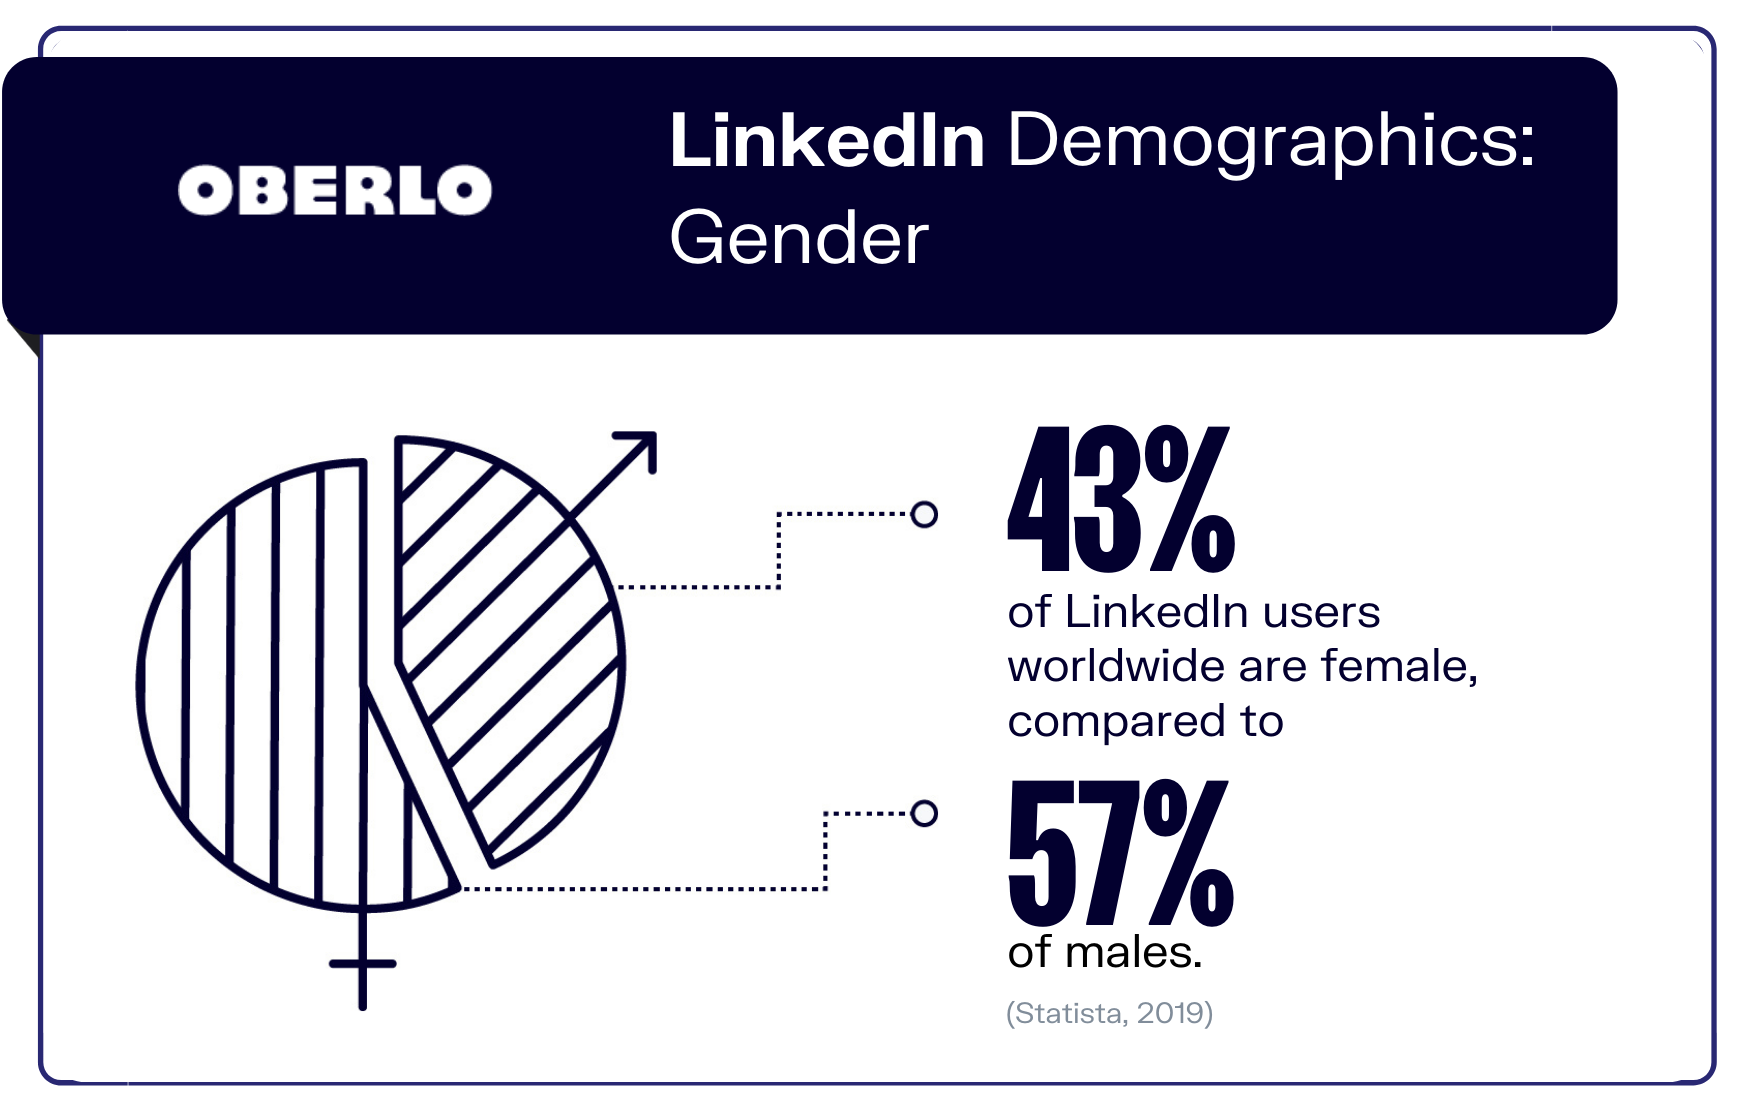 LinkedIn Demographics: Gender graphic